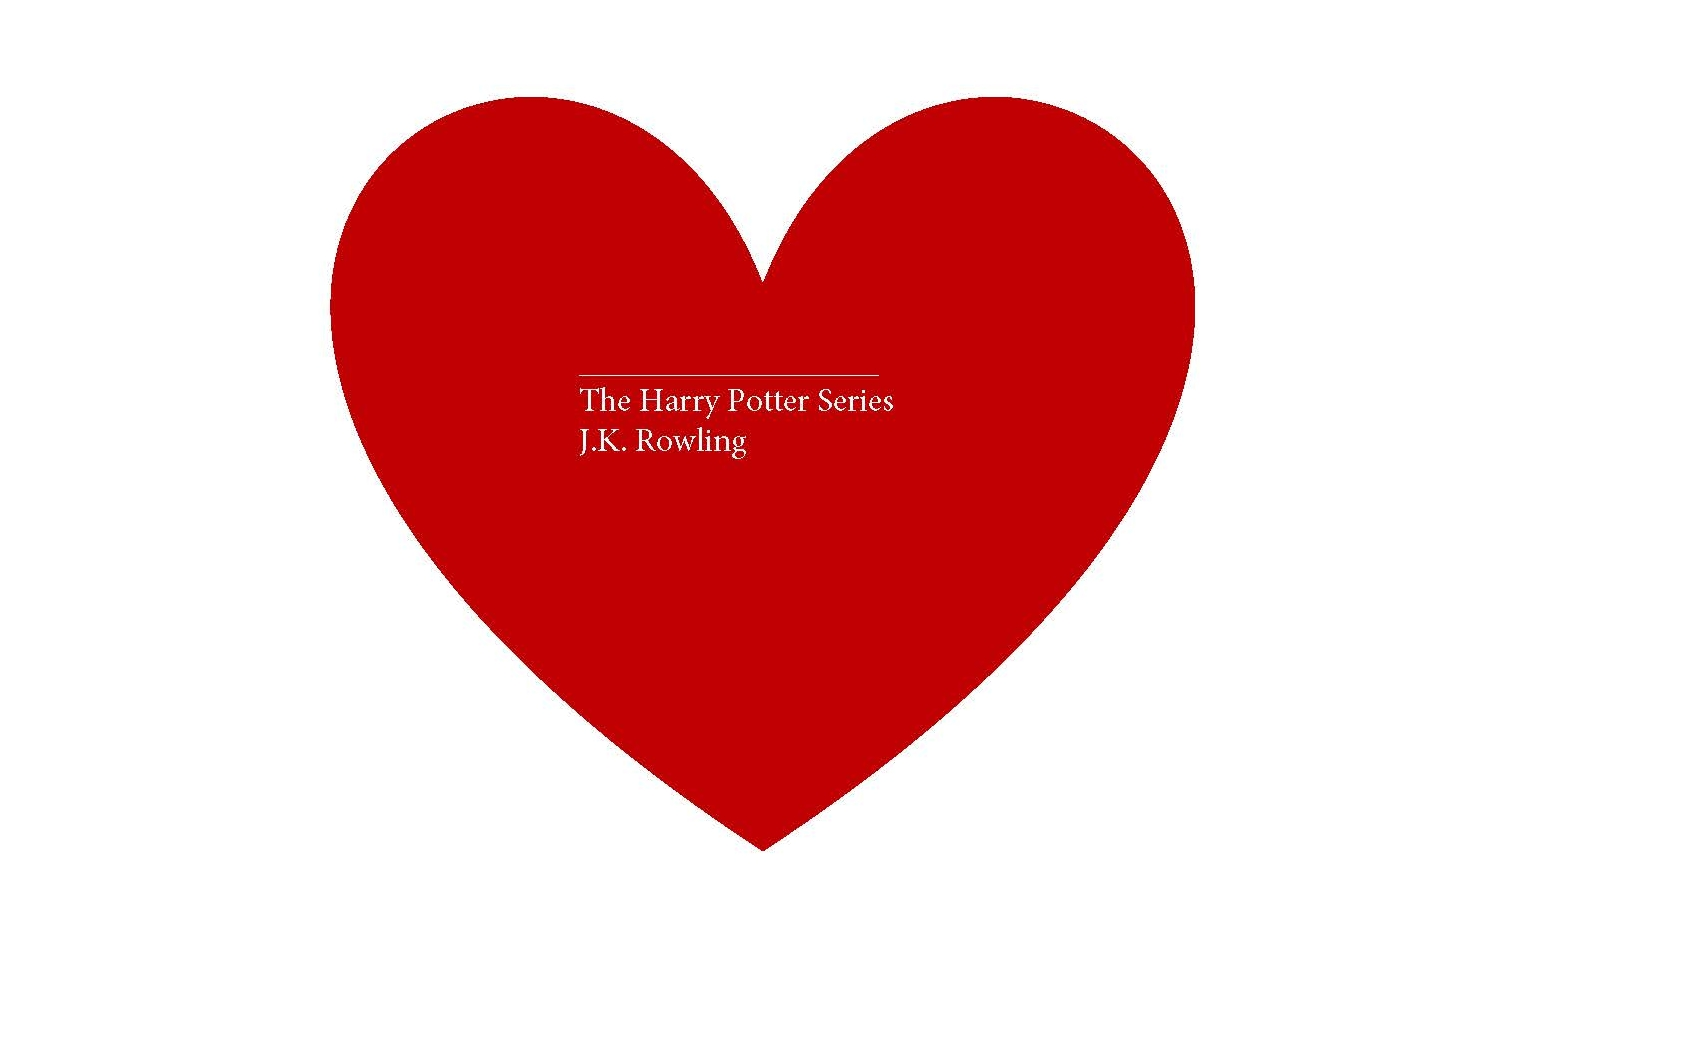 """""""Then she was kissing him as she never kissed him before, and ______ was kissing her back, and it was blissful oblivion, better than firewhiskey; she was the only real thing in the world."""" Harry Potter & the Deathly Hallows"""